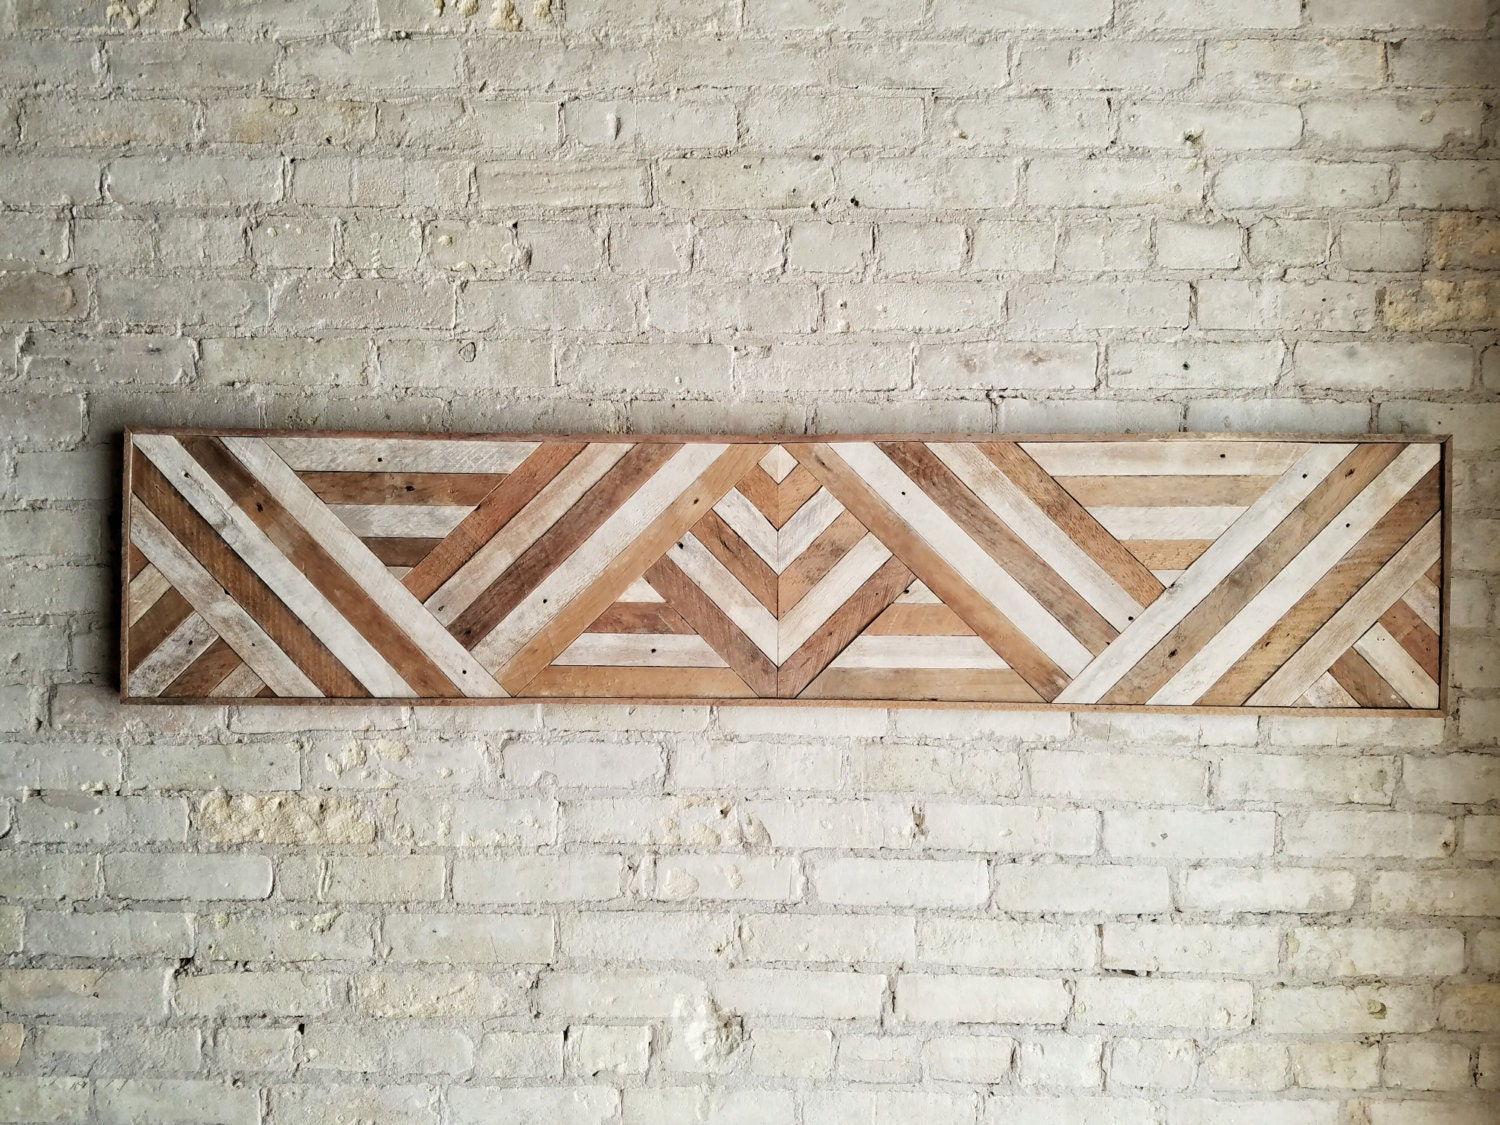 Reclaimed Wood Wall Art, Queen Headboard, Wood Wall Decor, Geometric  Triangle Pattern, 60 X 12